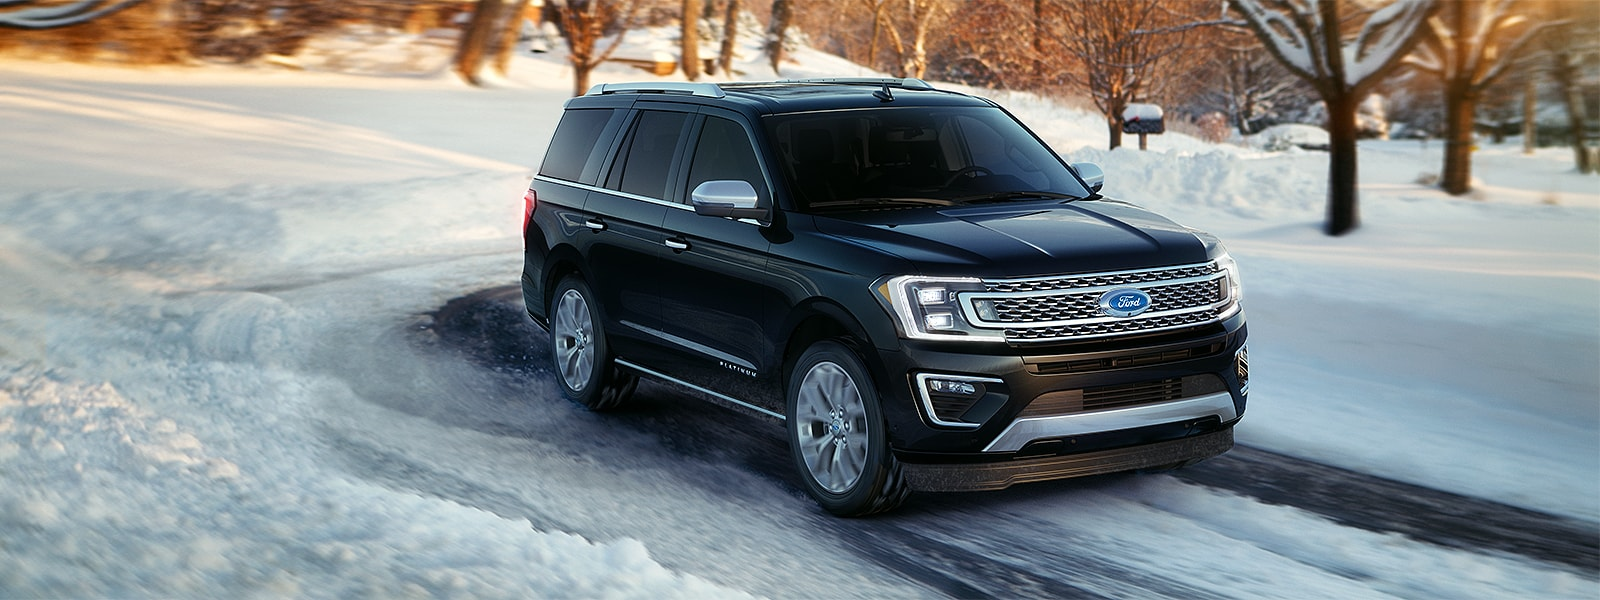 New 2018 Ford Expedition for Sale in Michigan | Stillwell Ford